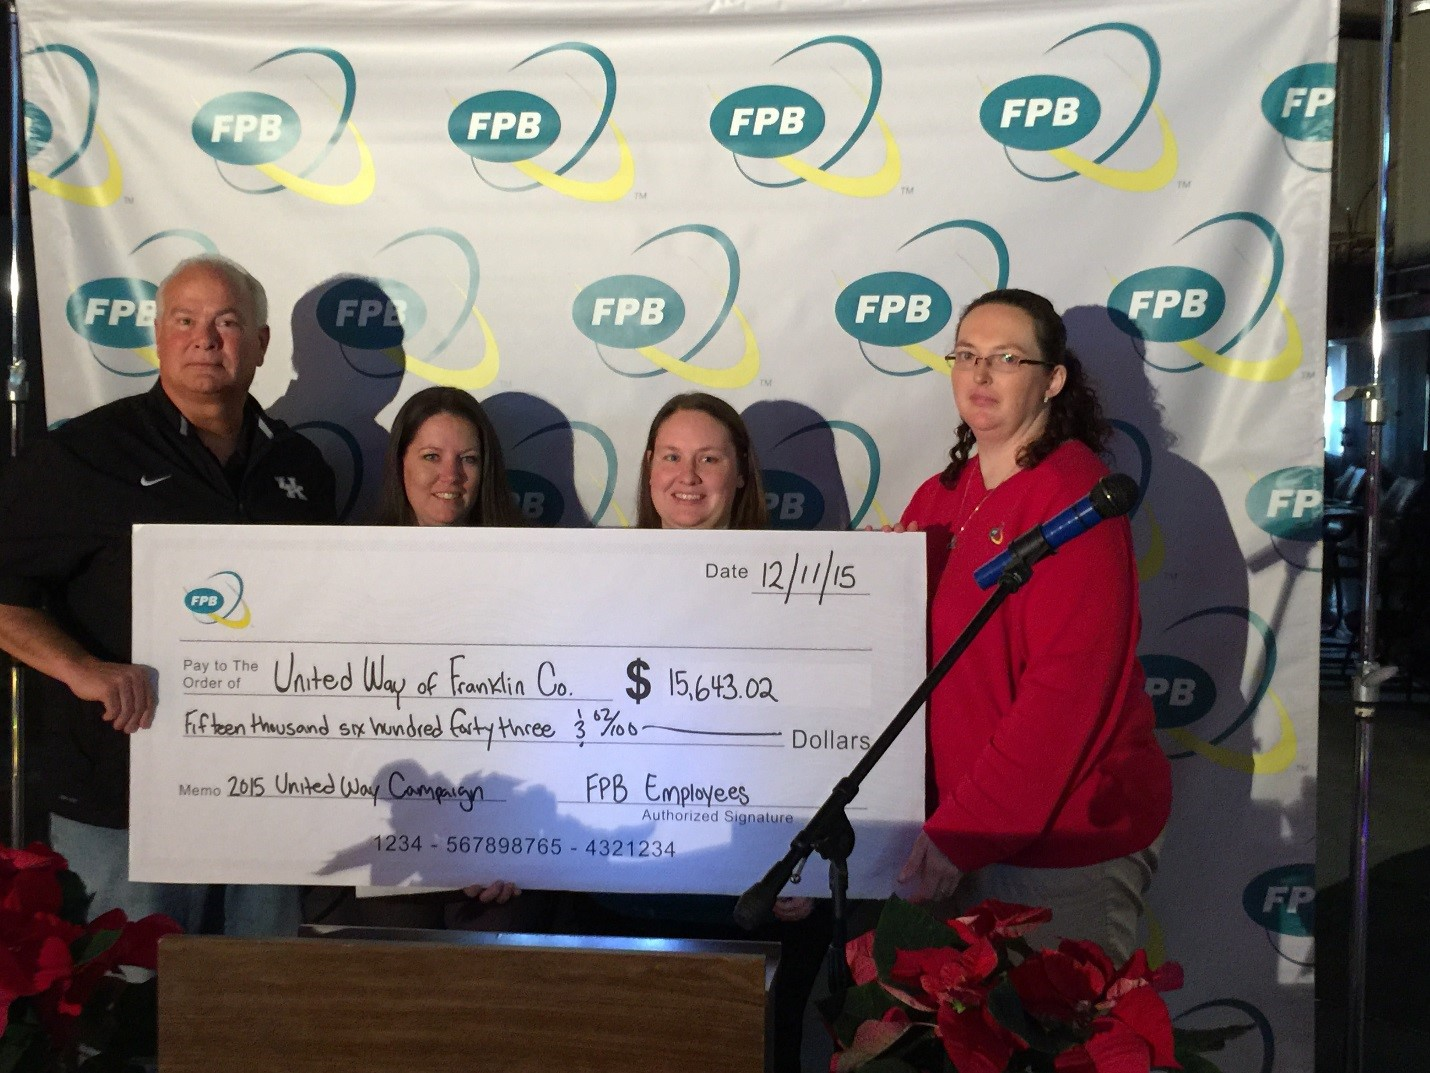 FPB presents a check to United Way of Franklin County Executive Director Randy Roberts.(Pictured left to right – Randy Roberts, United Way of Franklin County; and 2016 FPB Committee Members Michelle Early, Kim Bayes and Rebecca Wilson.)